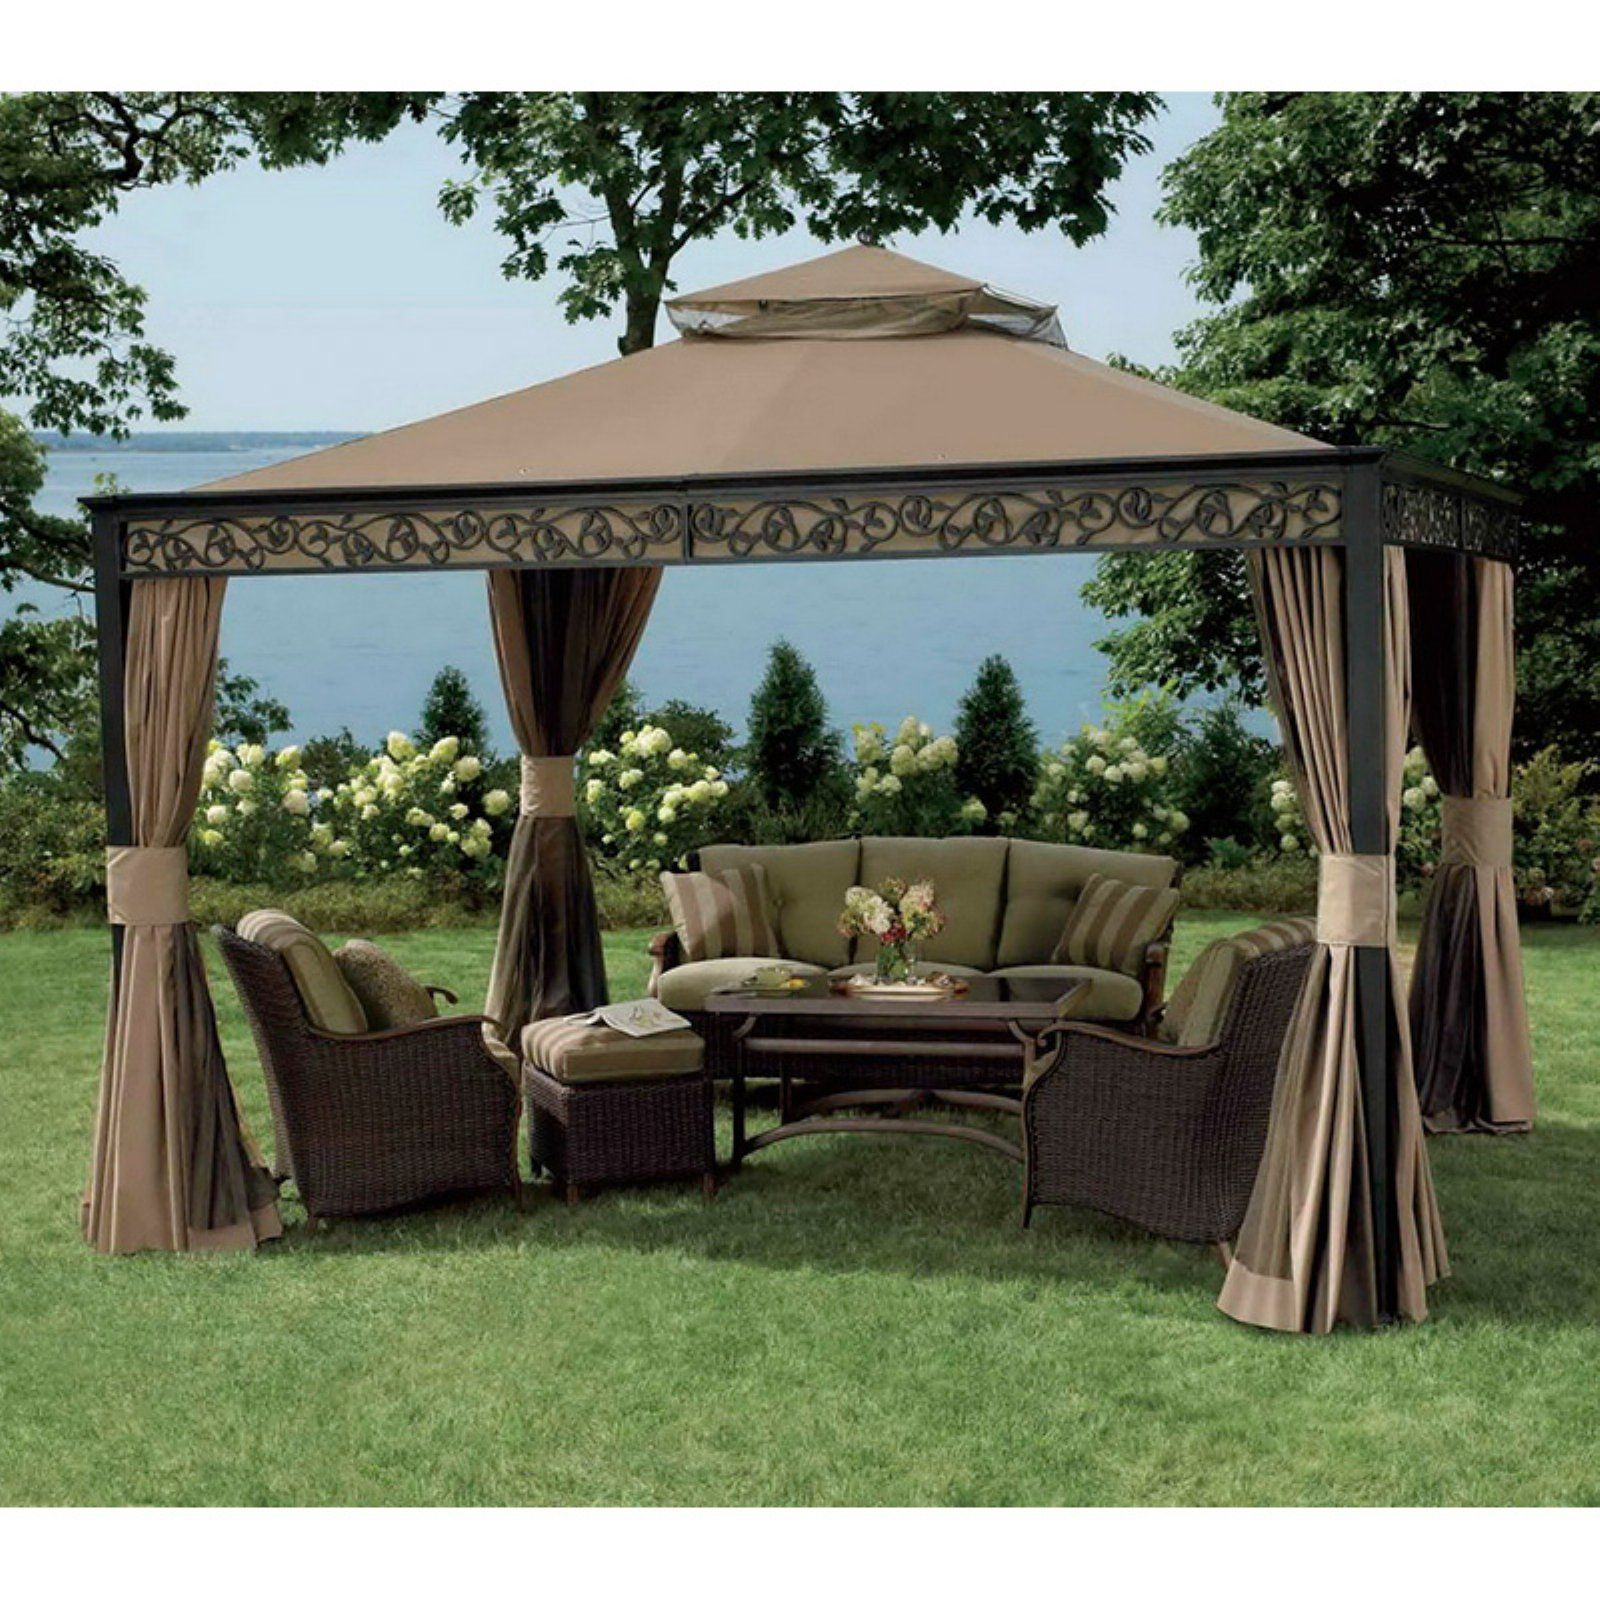 Sunjoy 10 X 12 Ft Replacement Canopy Cover For L Gz399pal 1 Deluxe Bixby Gazebo Canopy Outdoor Gazebo Patio Canopy